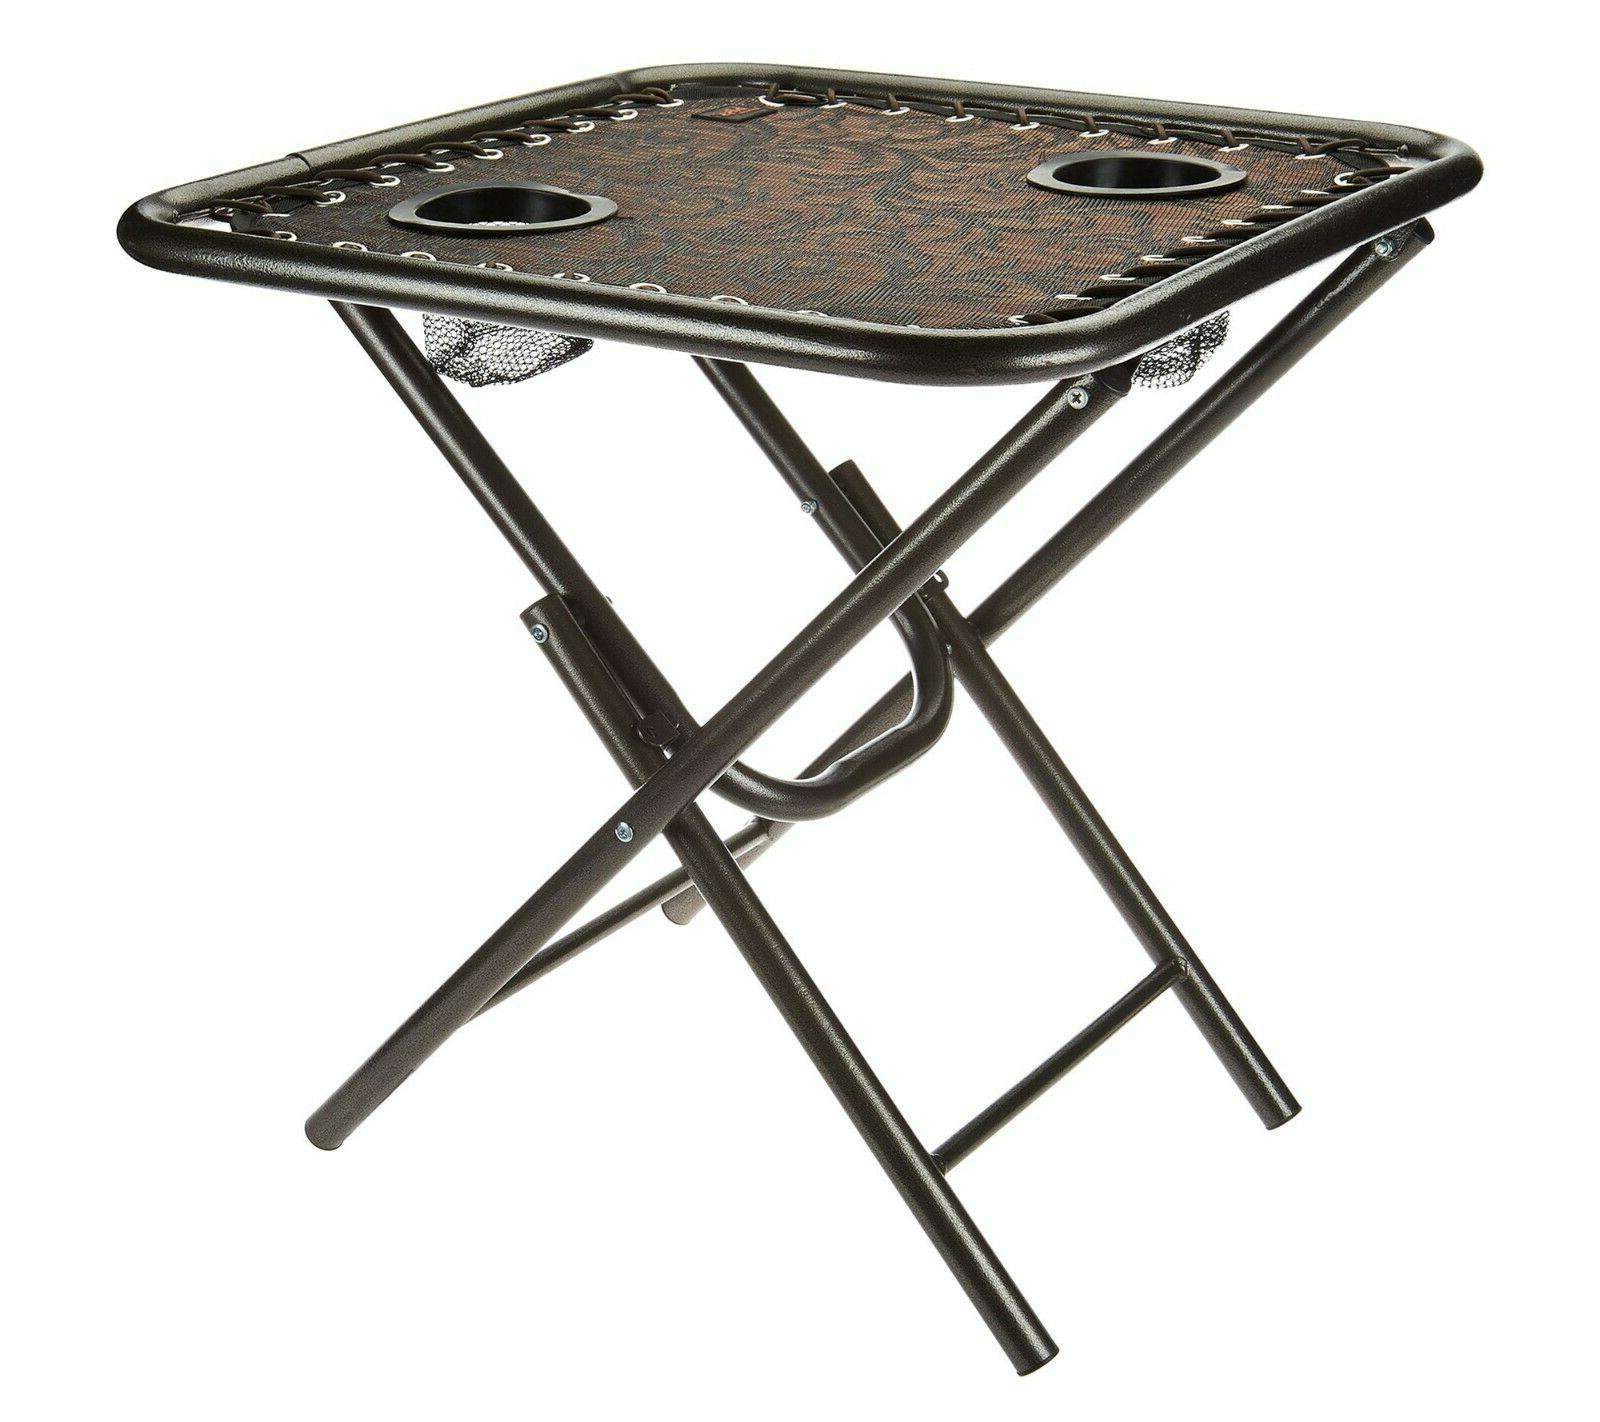 new foldable sling side table with cupholders